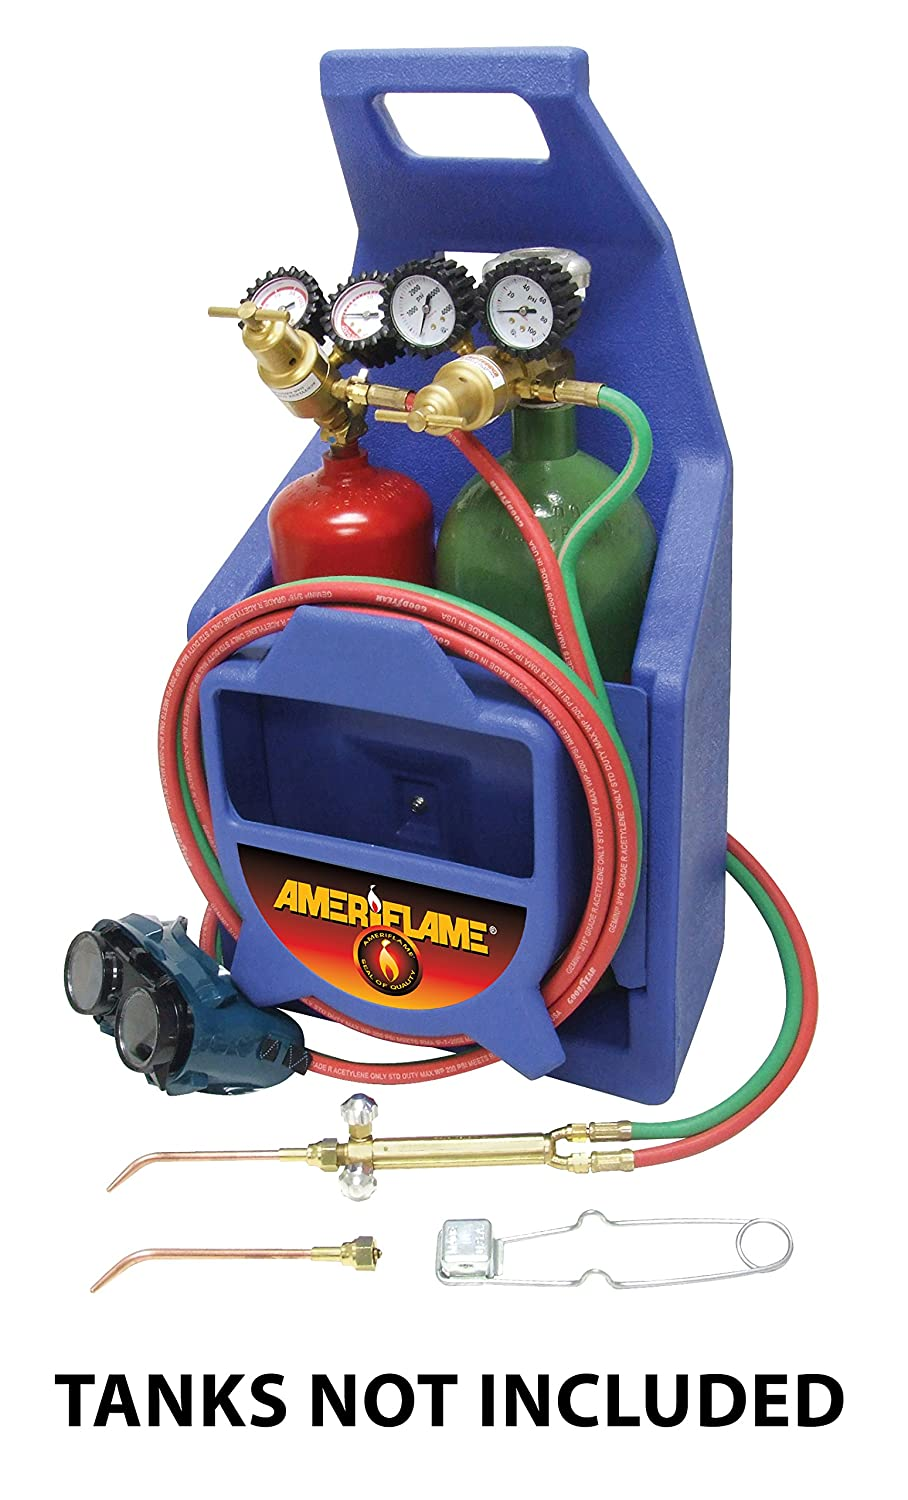 Ameriflame T100A Medium Duty Portable Welding Brazing Outfit with Plastic Carrying Stand